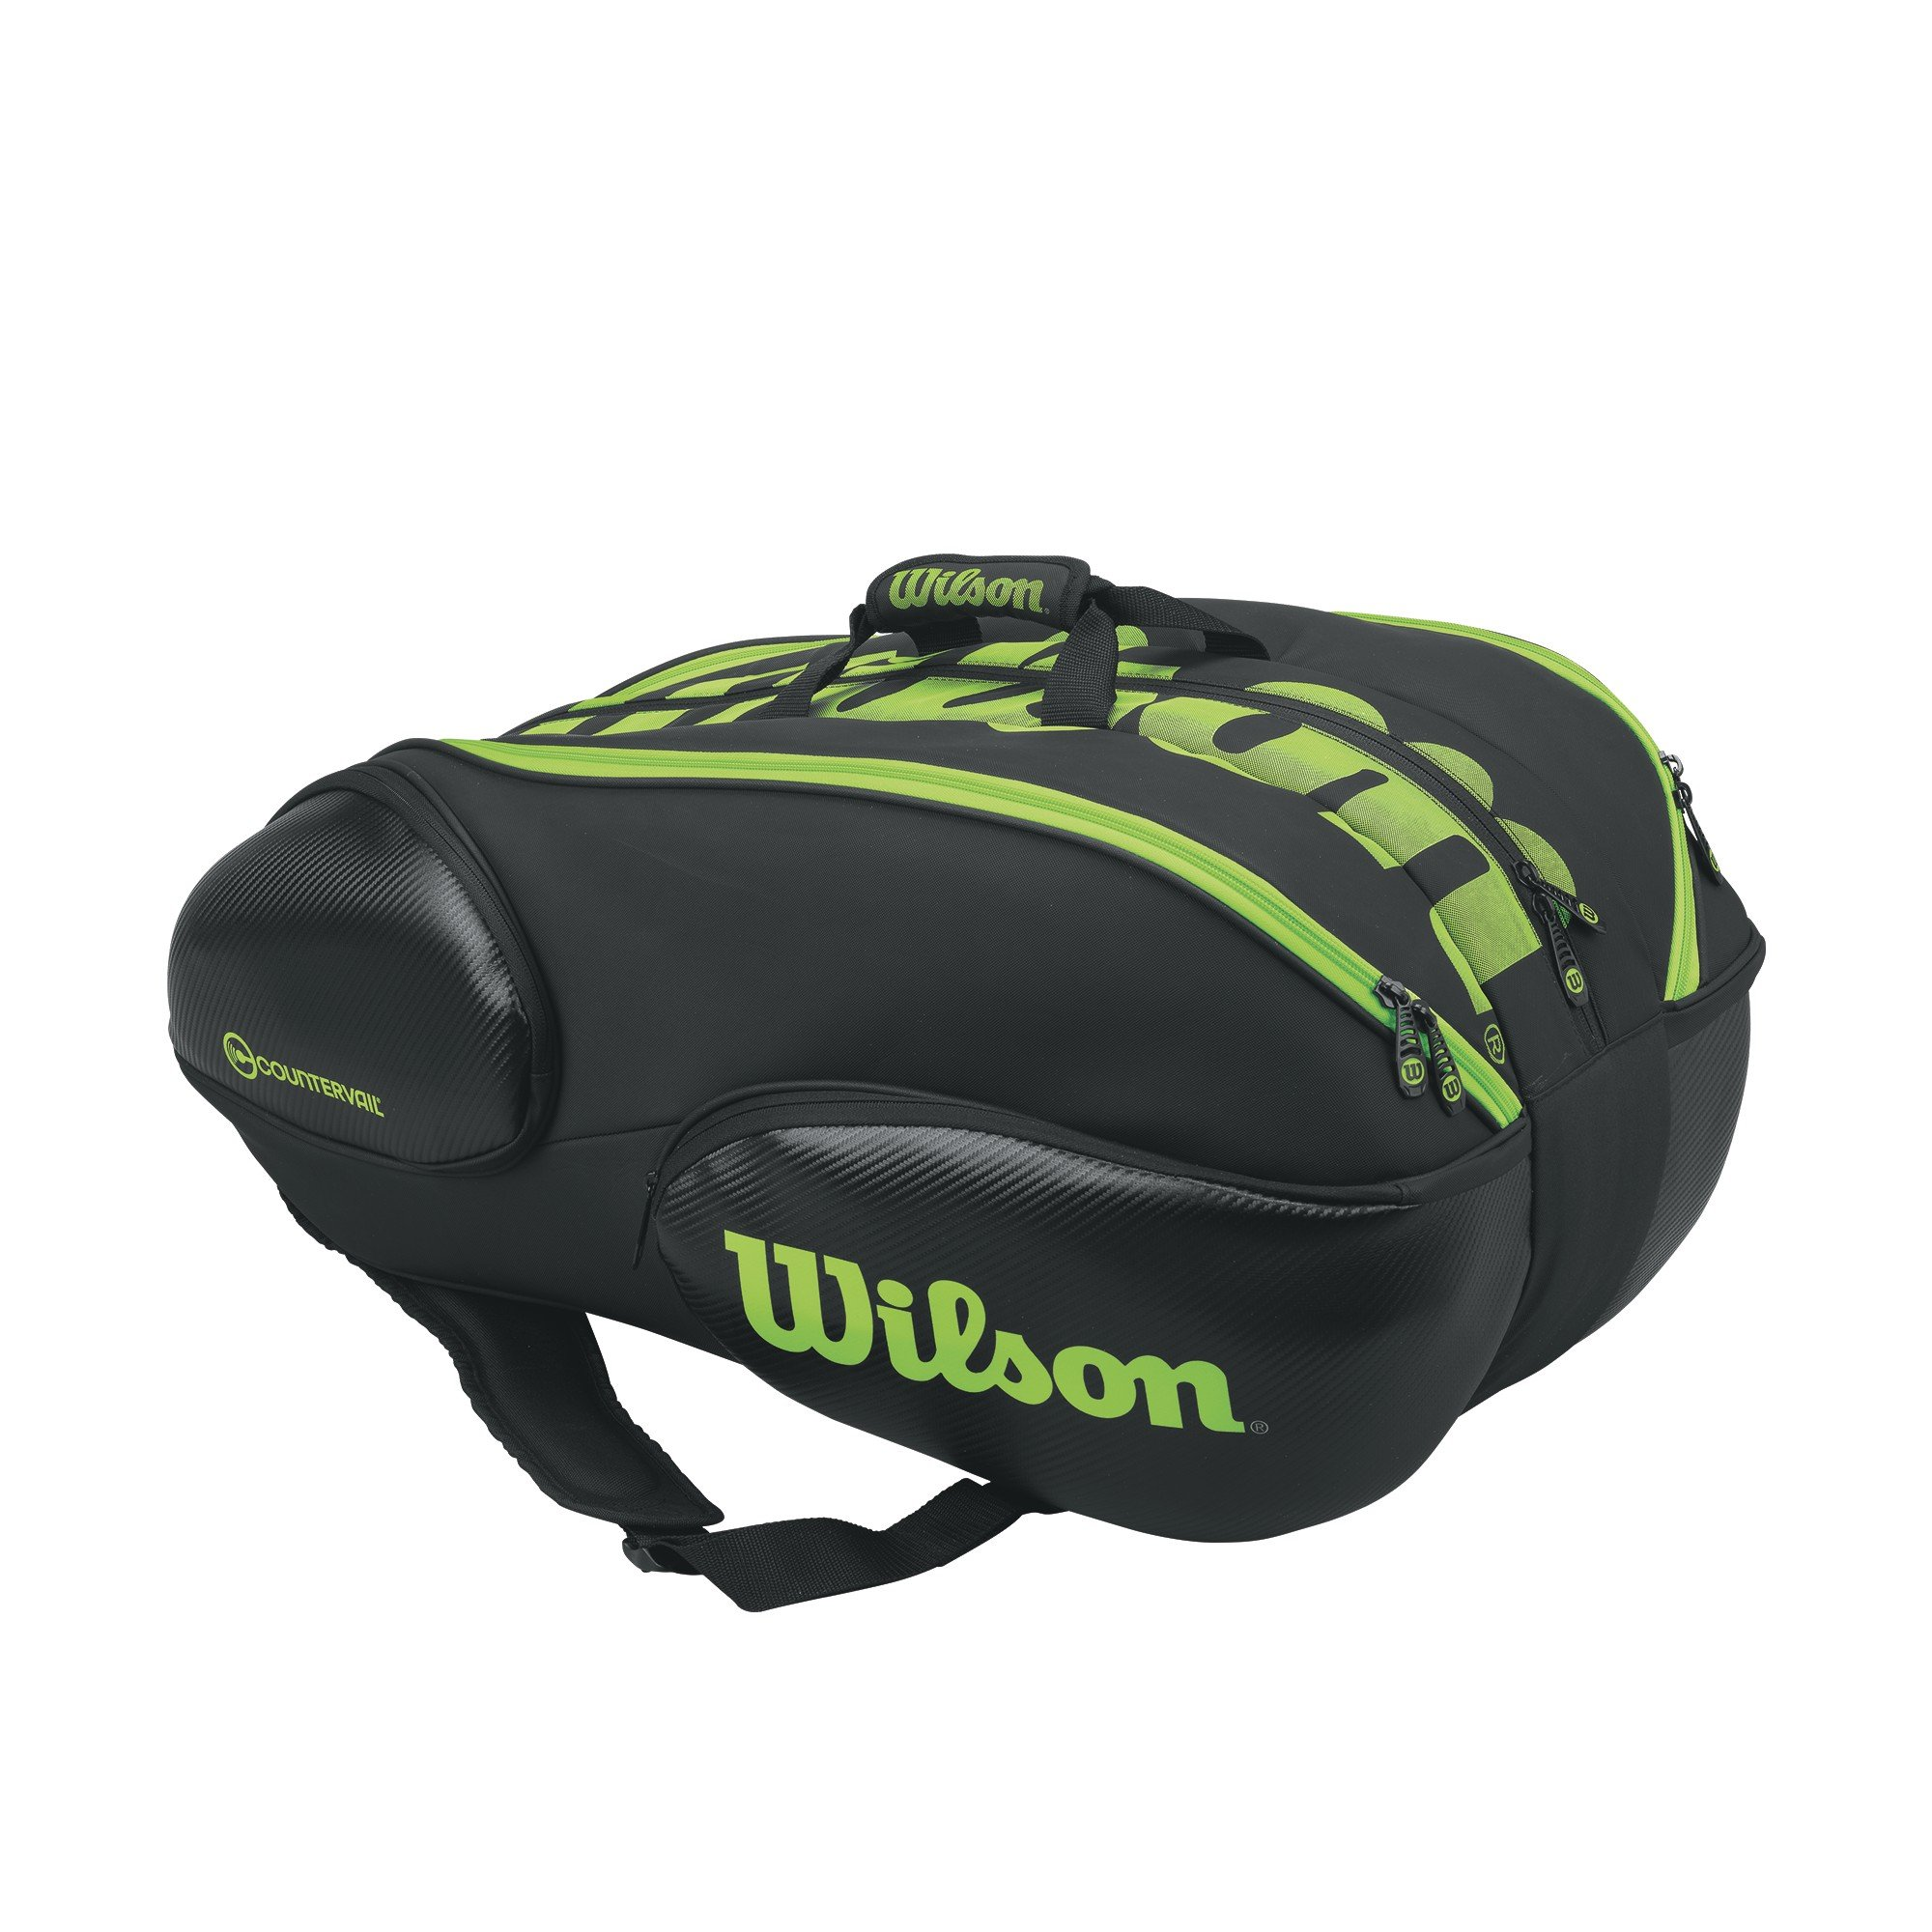 Wilson Blade Collection Racket Bag (15 Pack), Black/Green by Wilson